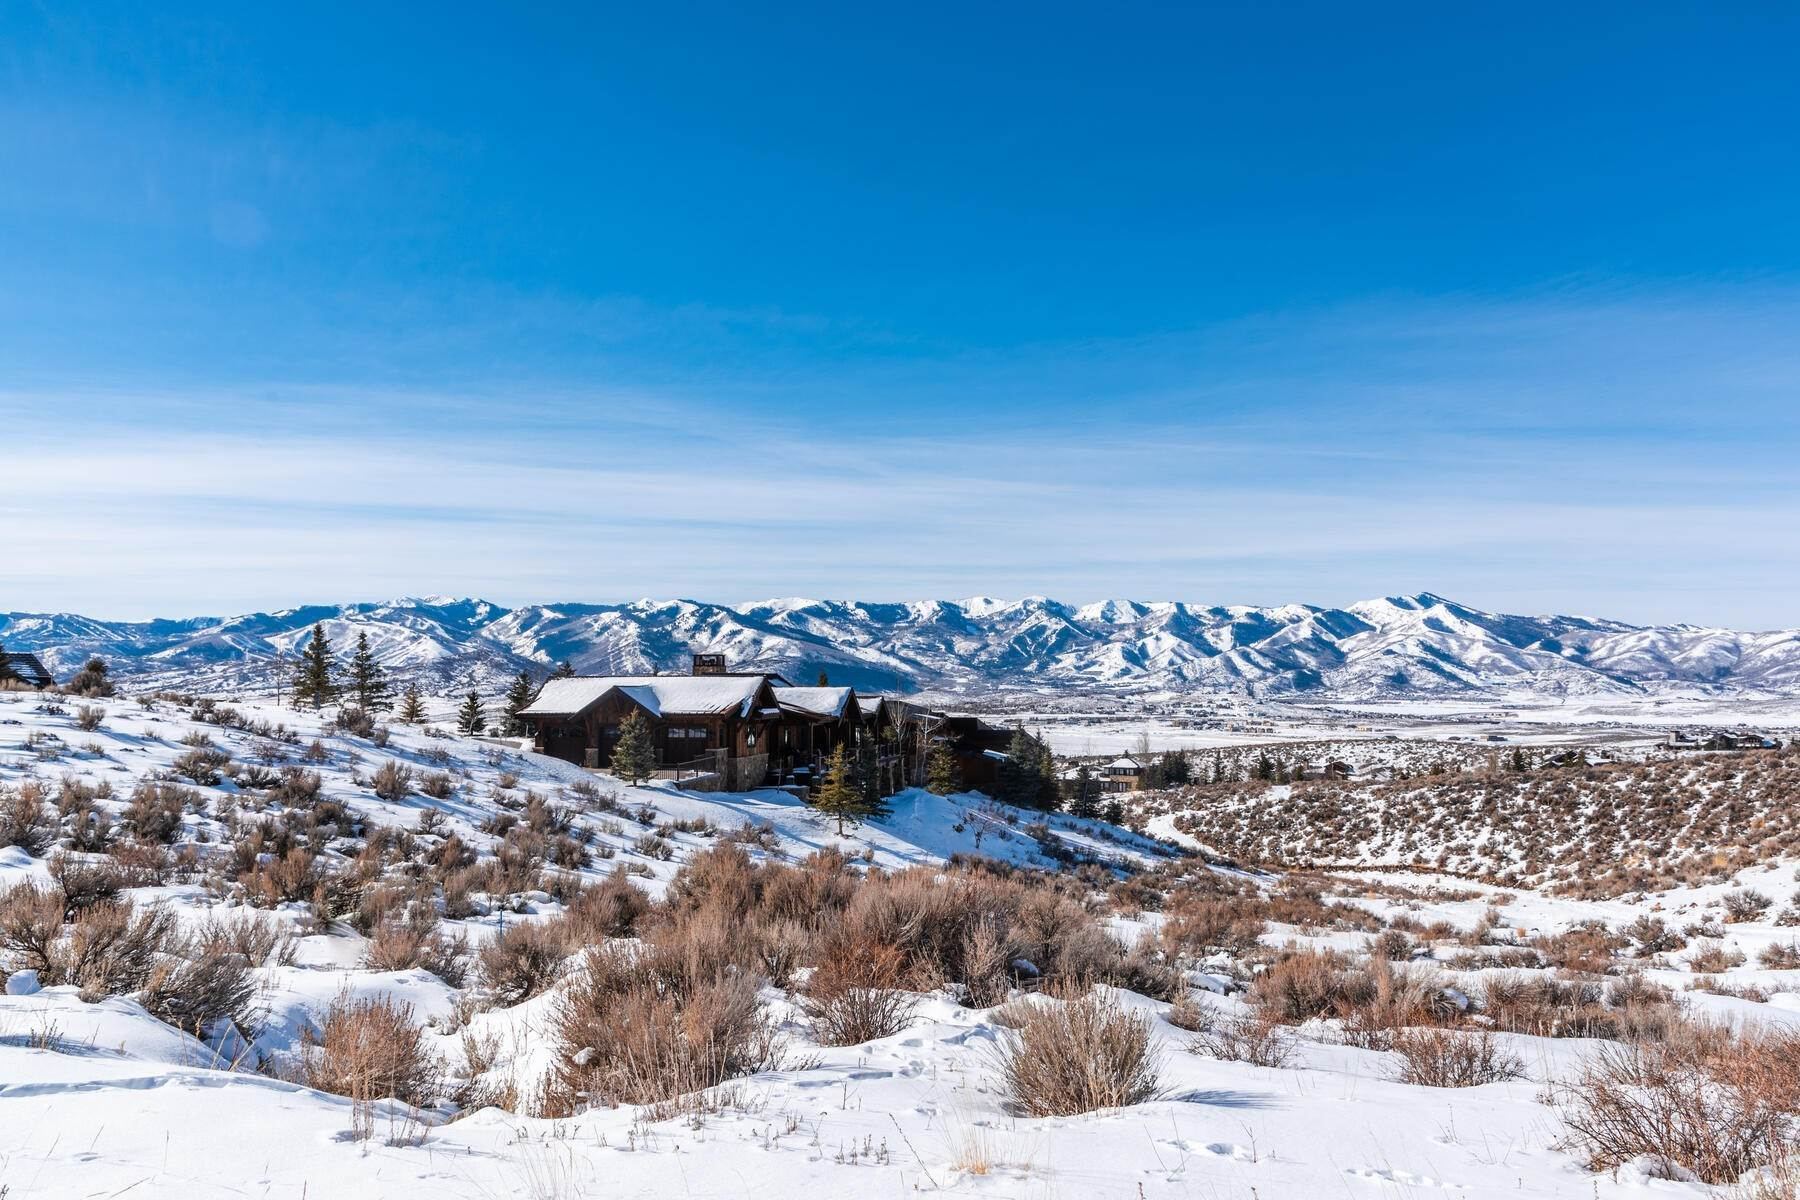 Property for Sale at Ski Resort Views And Great Location In Promontory 3102 Blue Sage Trl Park City, Utah 84098 United States